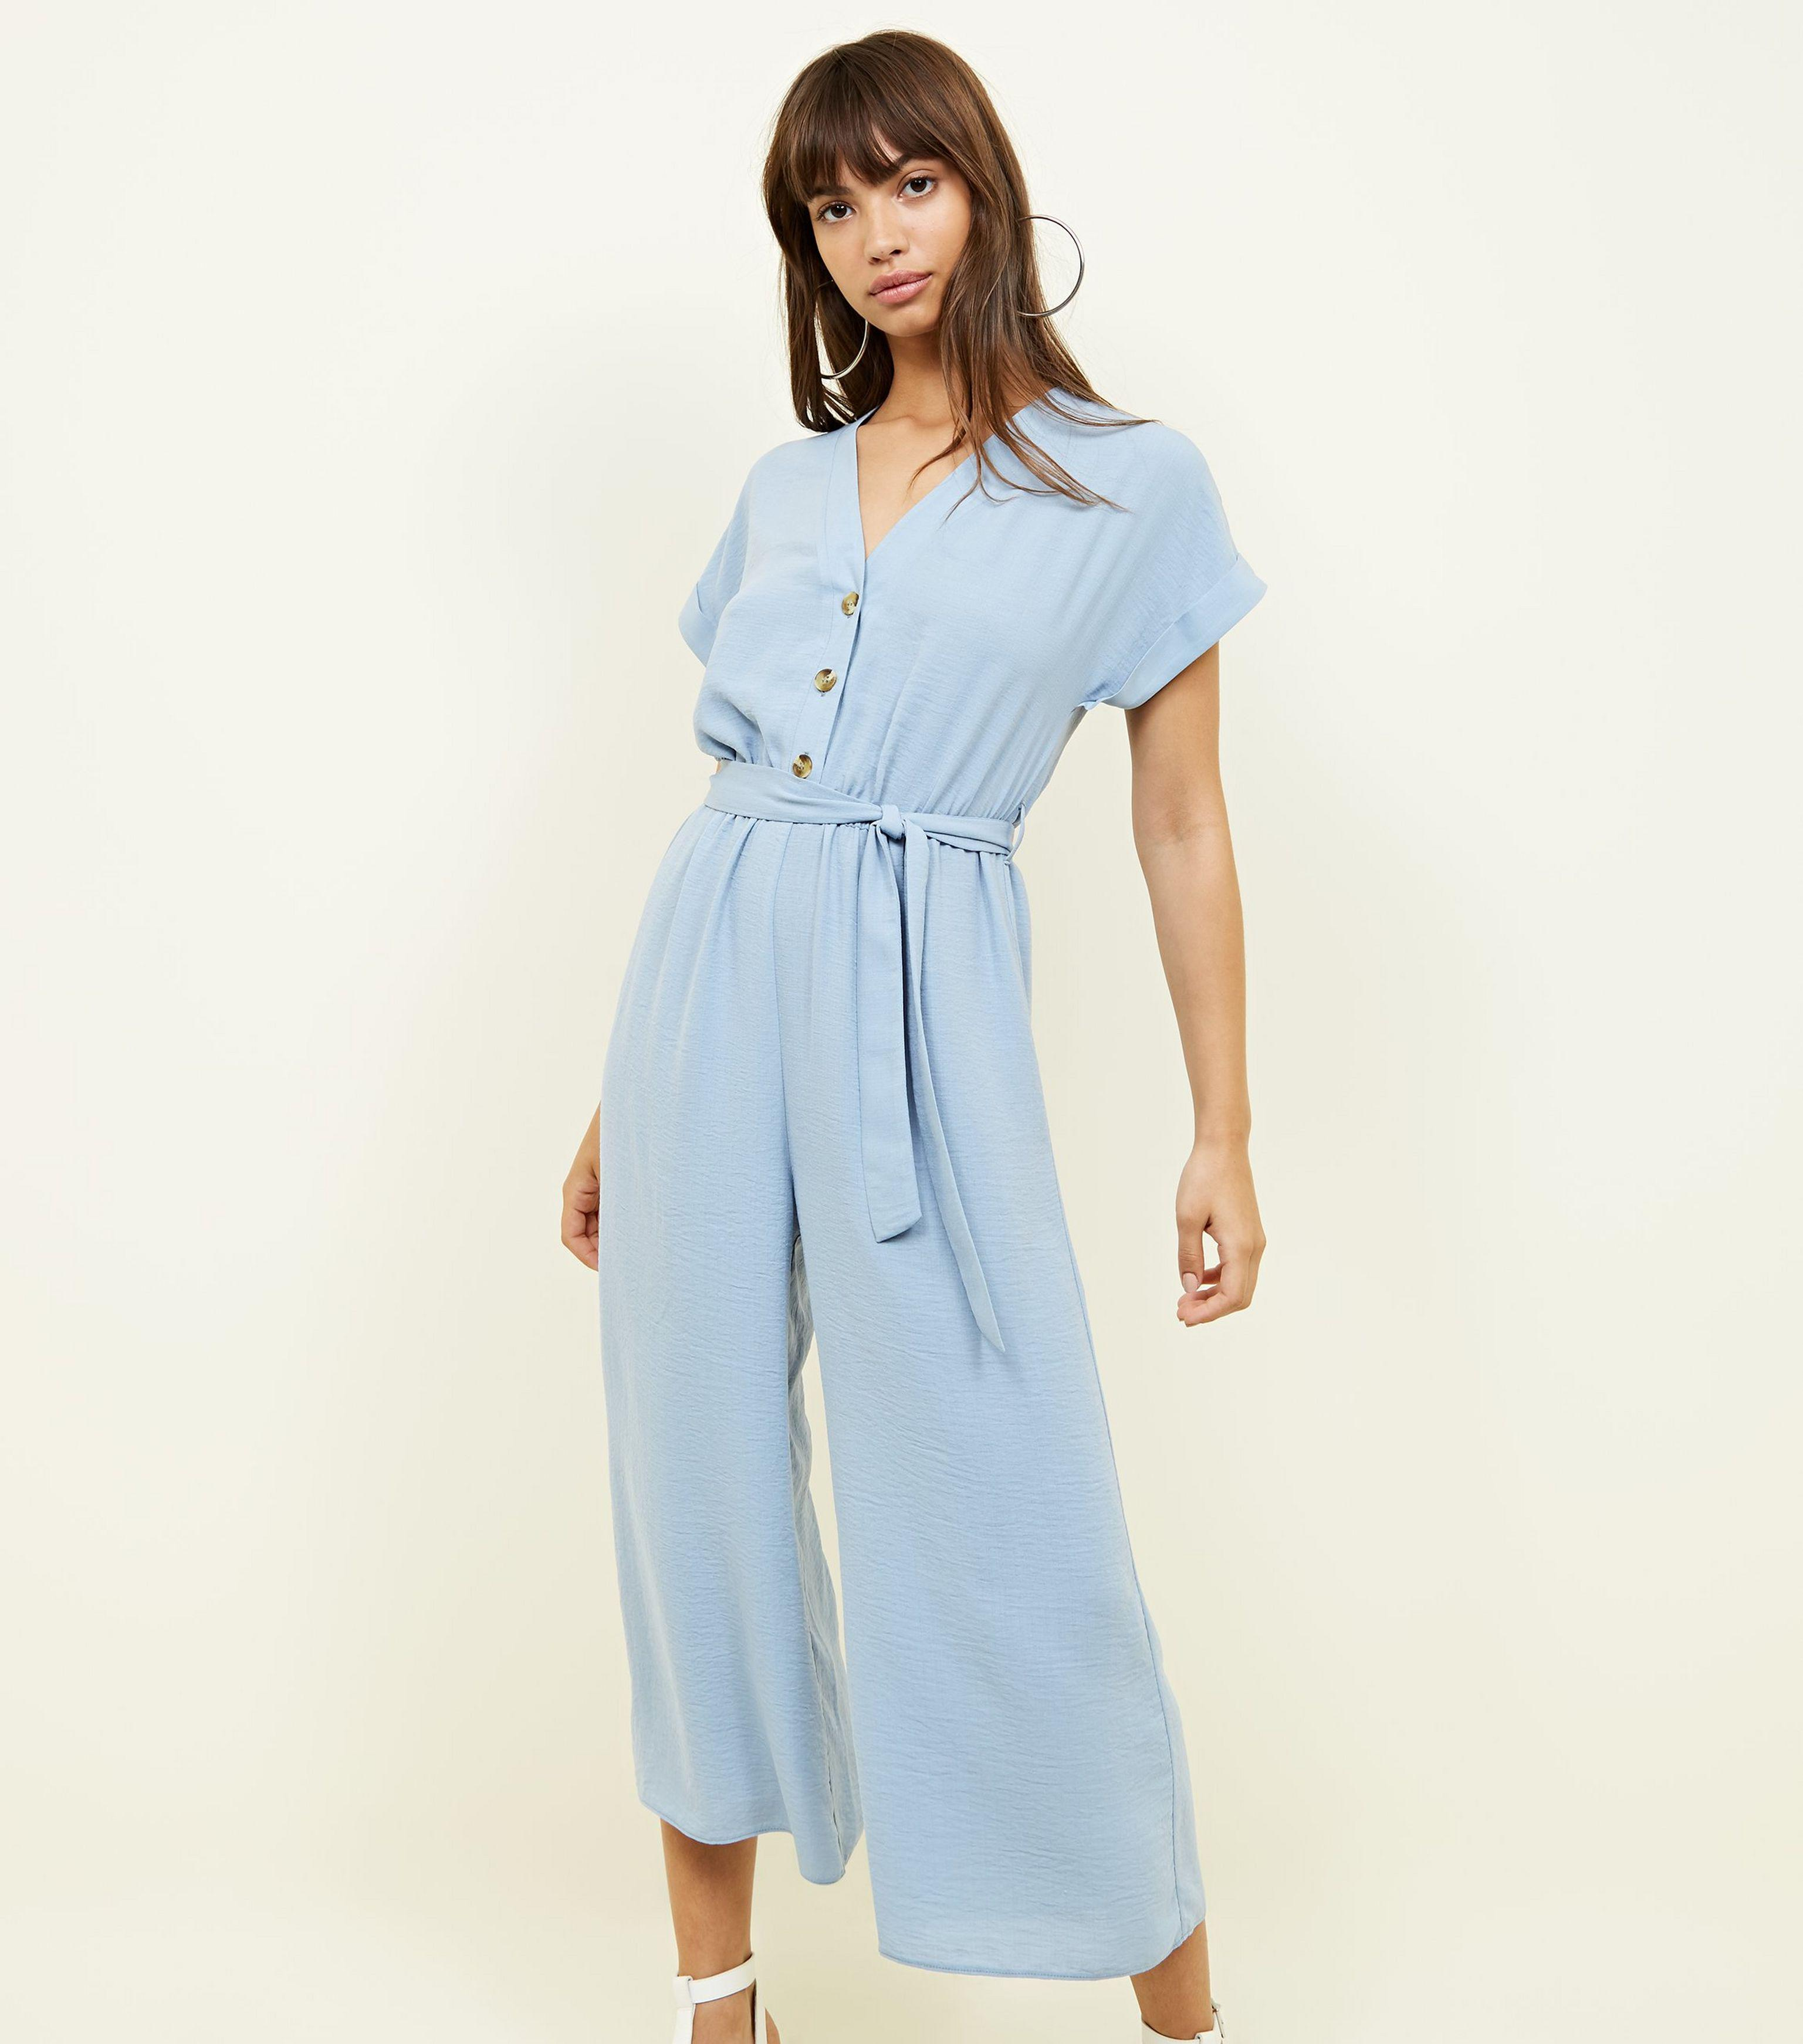 cb9332a32880 New Look Blue Linen-look Button Up Culotte Jumpsuit in Blue - Lyst